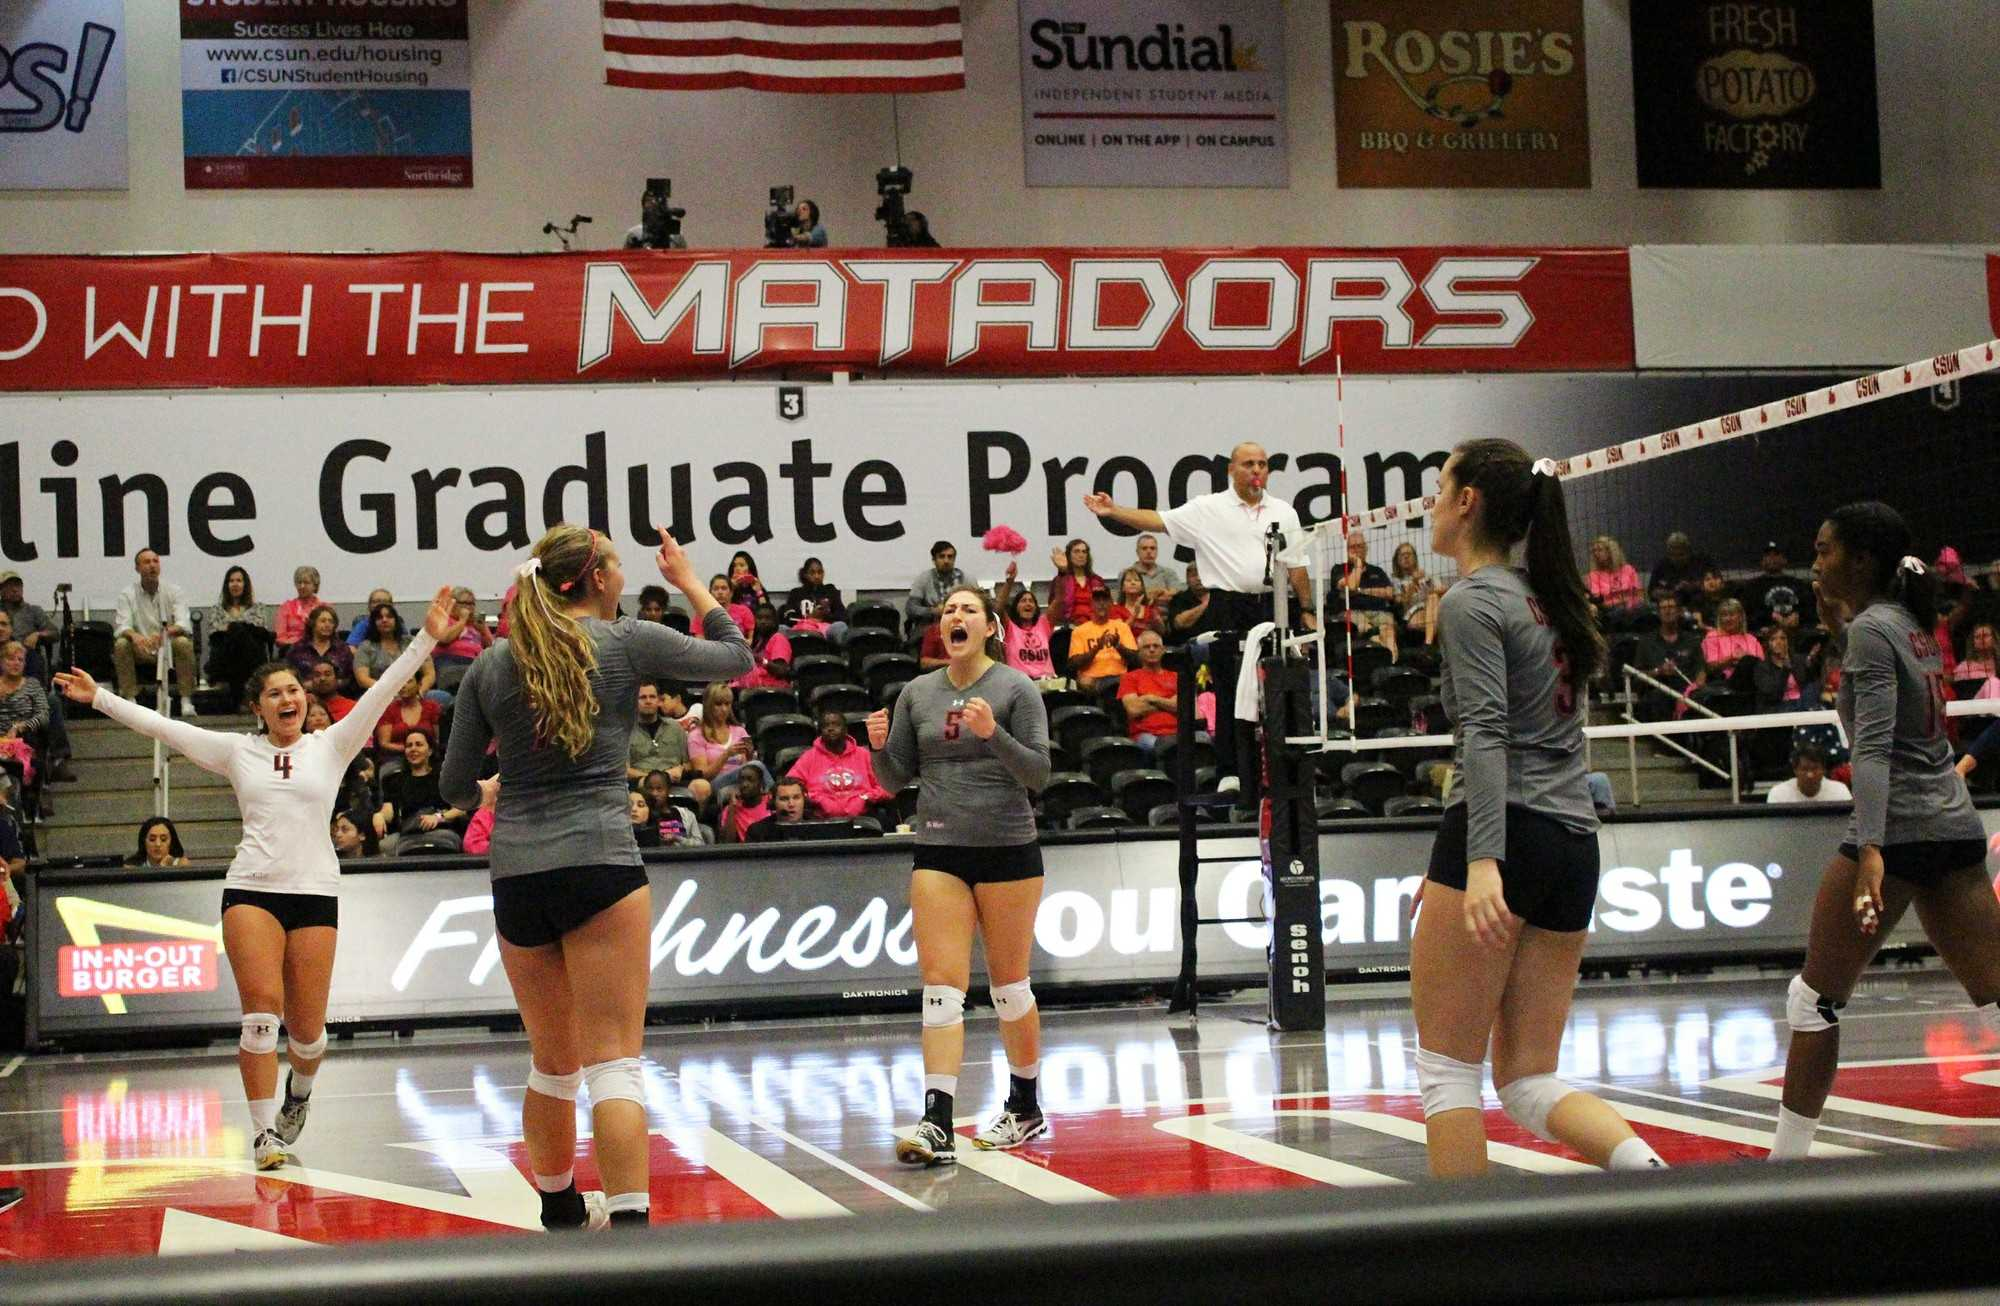 CSUN+volleyball+players+shout+for+joy+after+winning+a+point